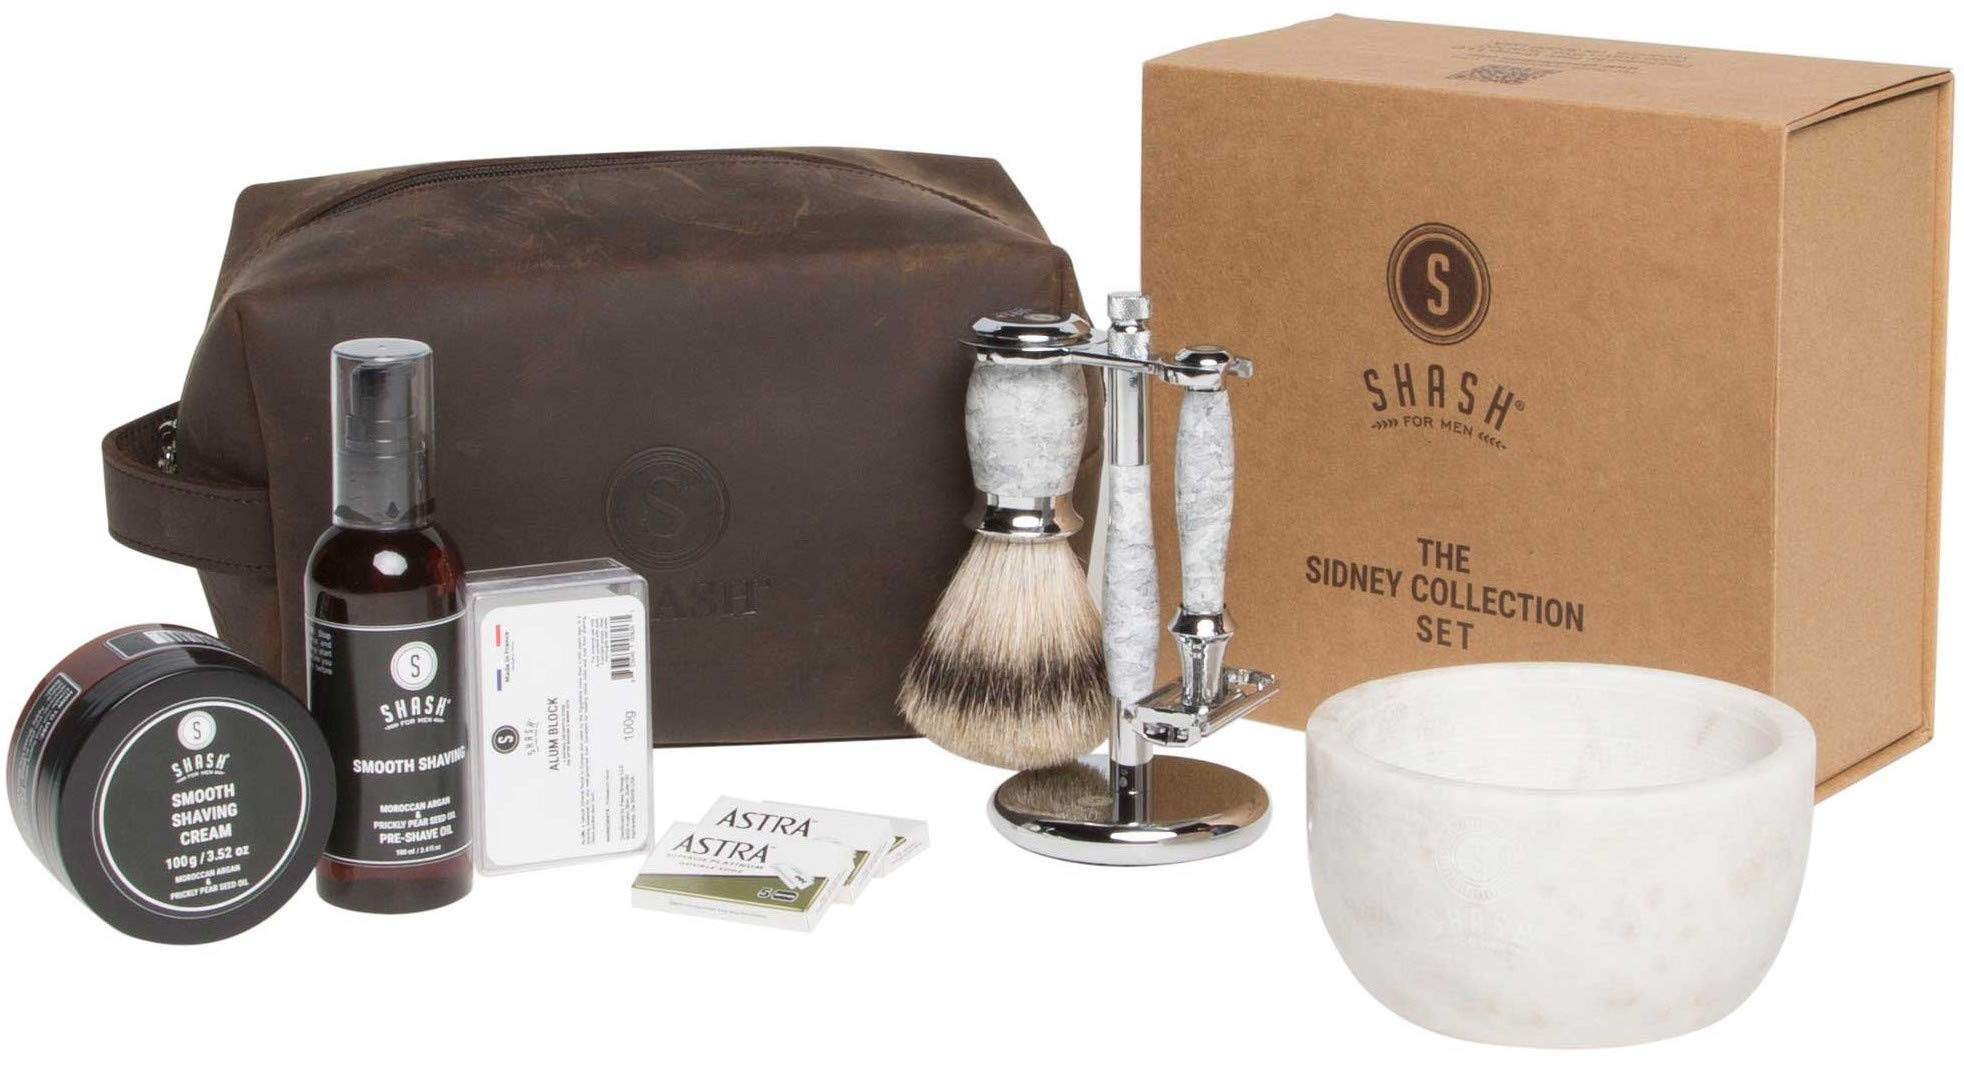 SHASH Sidney Collection Shaving kit, Shaving set White - Includes Butterfly Razor, Best Badger Brush, Stand, Pre-Shave Oil, Shaving Cream, and Double Edged Blades - Premium Quality Brass and Chrome